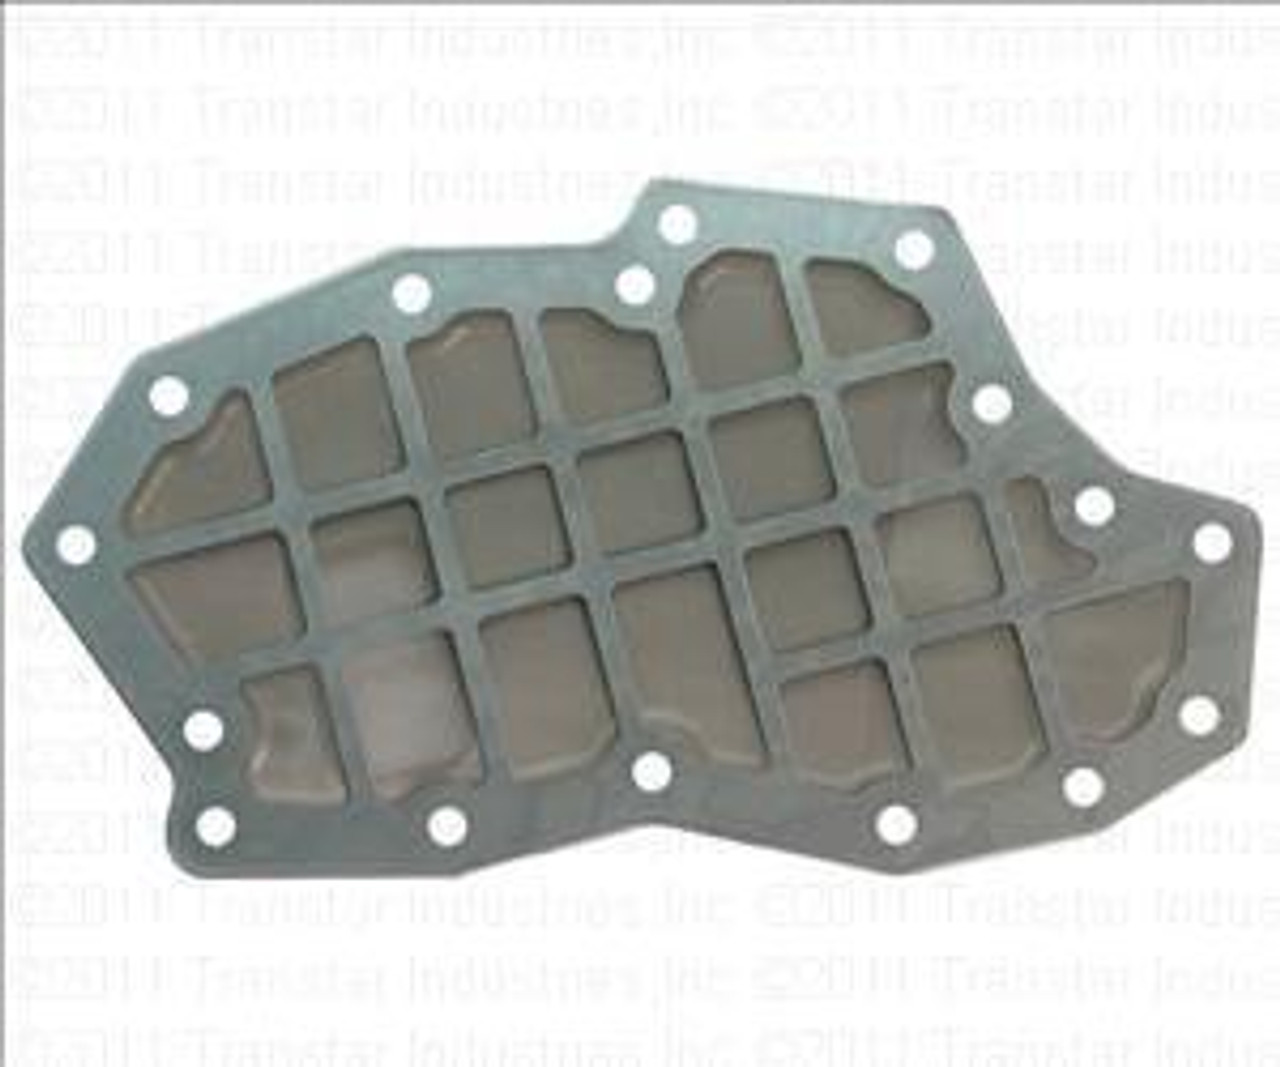 RE5R05A Pan Gasket